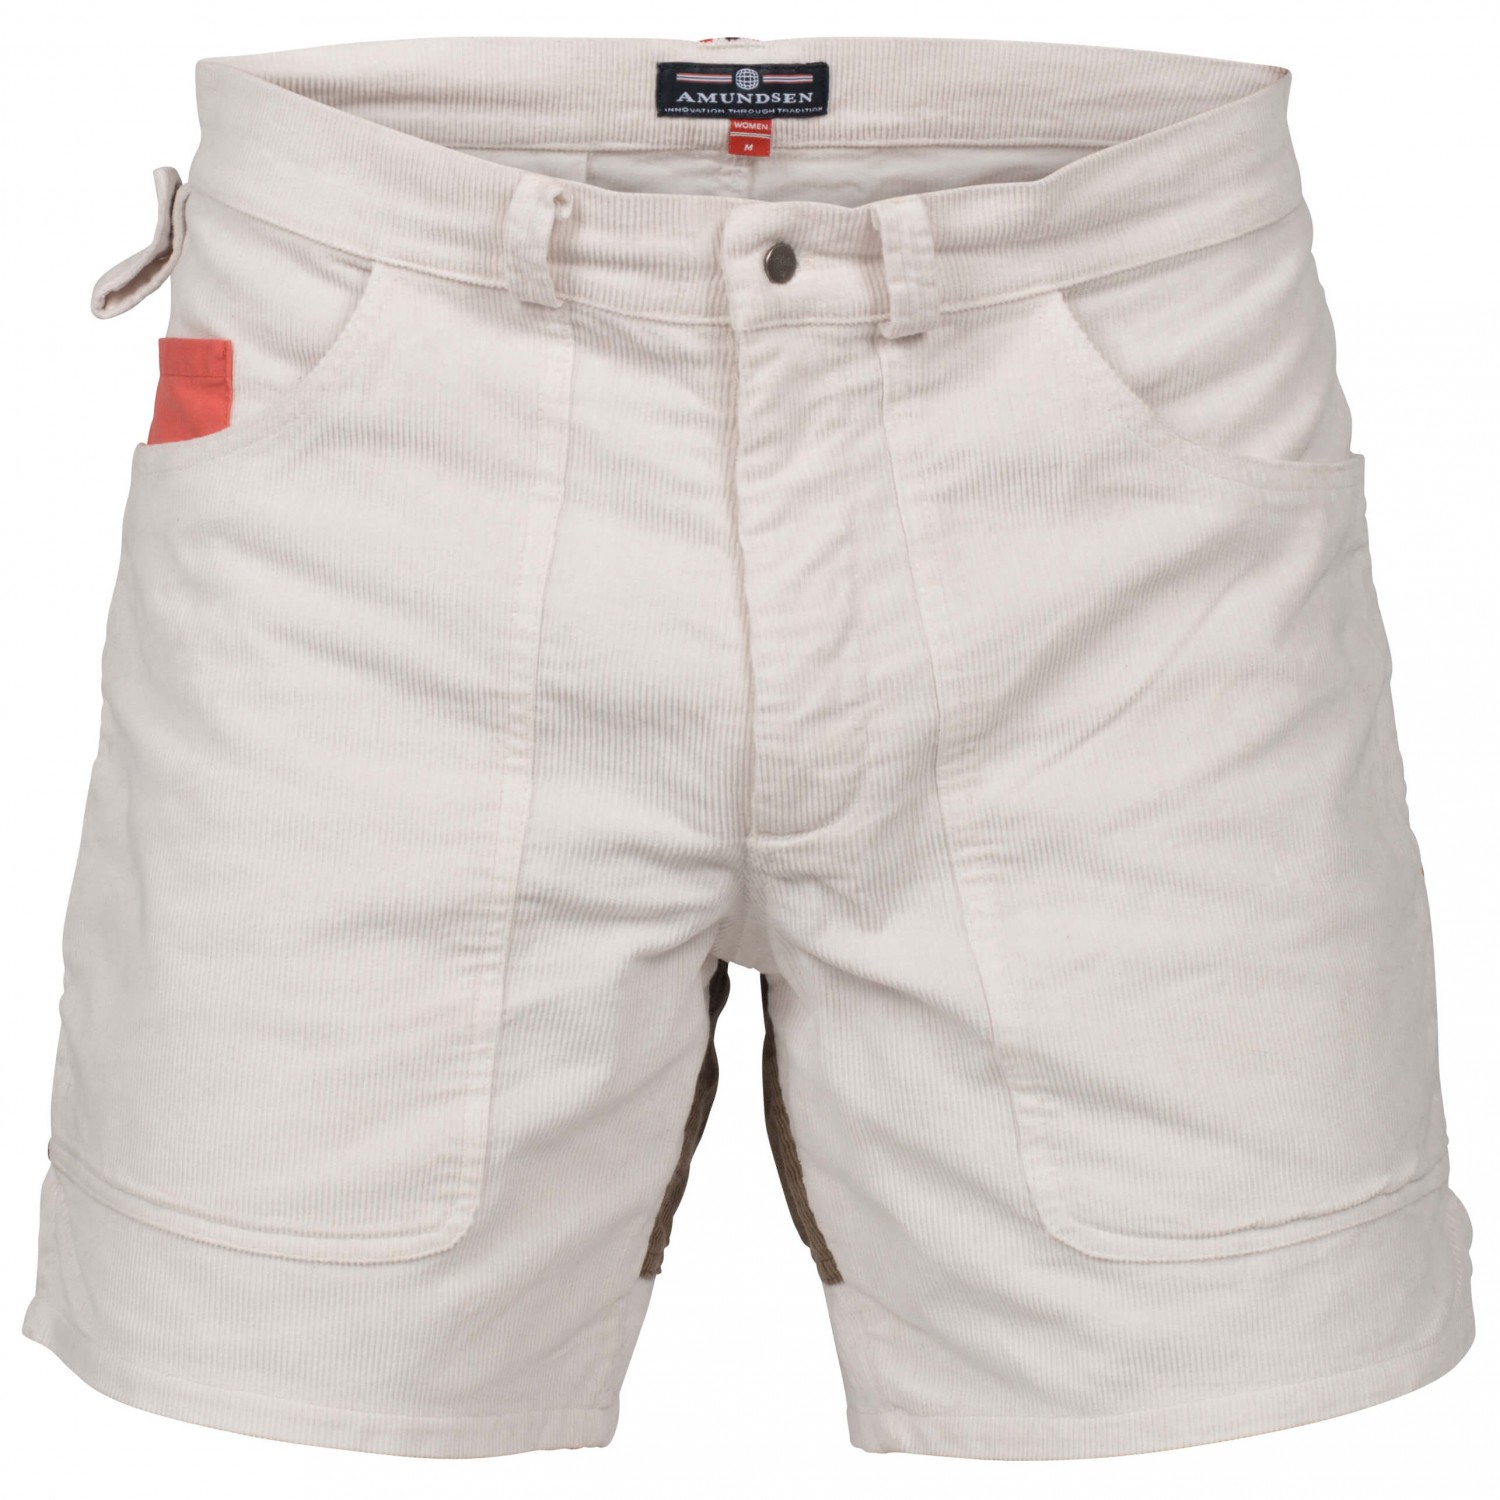 1fa6da27e072 Amundsen Sports 7Incher Concord - Shorts Men s